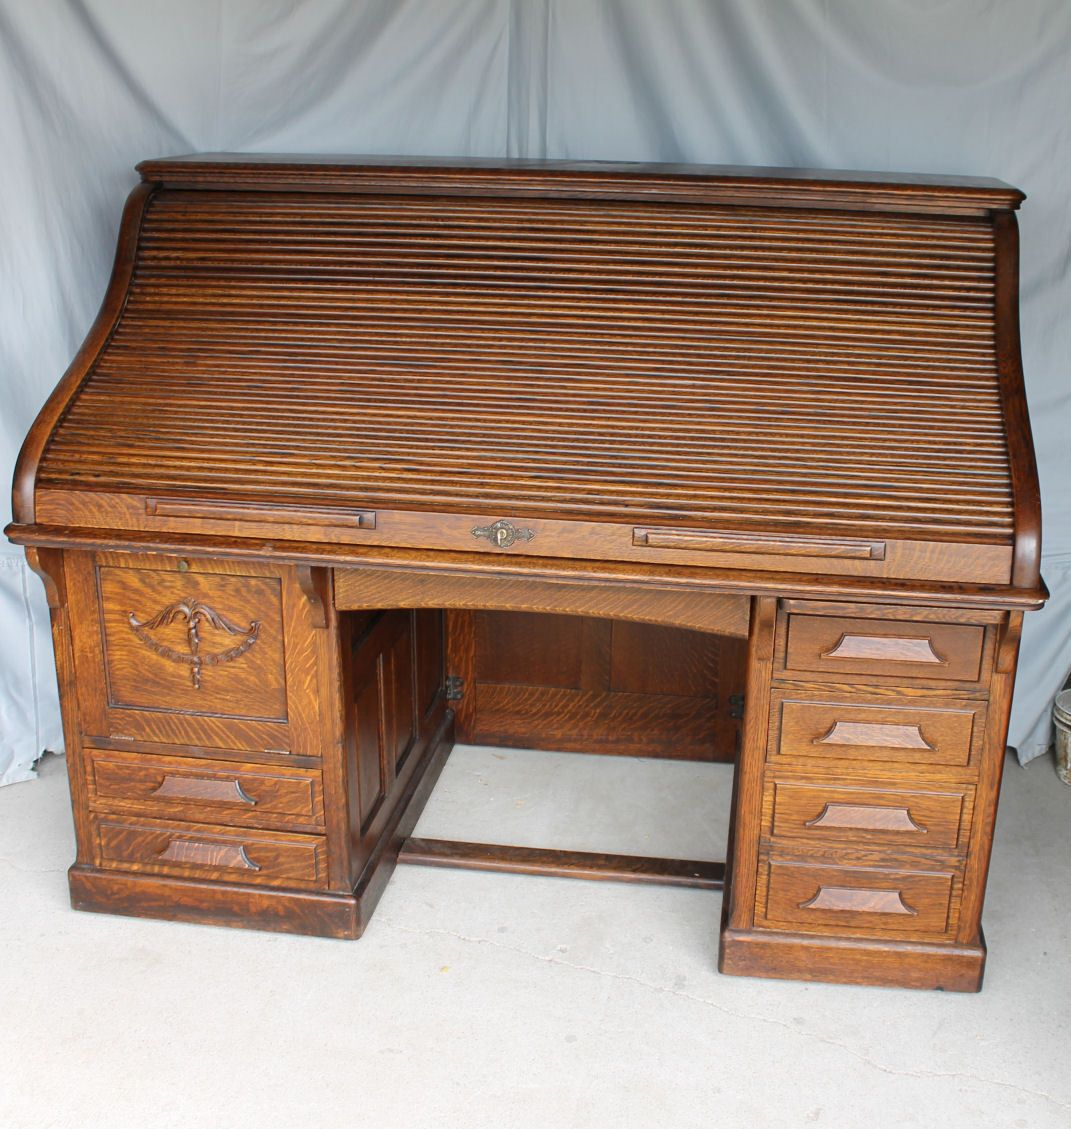 Antique Quarter Sawn Oak Heavy Paneled Roll Top Desk – 66 inches Length |  eBay - Antique Quarter Sawn Oak Heavy Paneled Roll Top Desk – 66 Inches